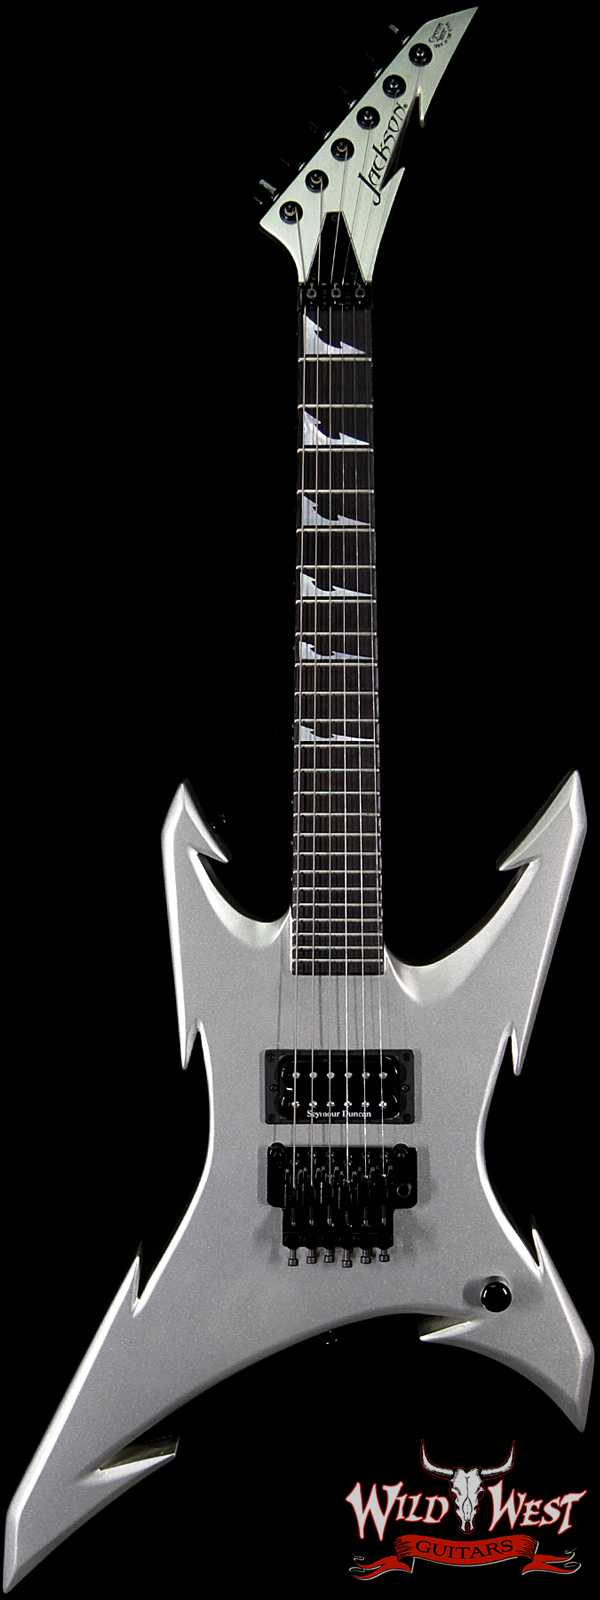 2009 NAMM Limited Jackson Custom Shop Pablo Santana Masterbuilt 3/4 Size Mini Extreme Warrior Floyd Rose Quicksilver